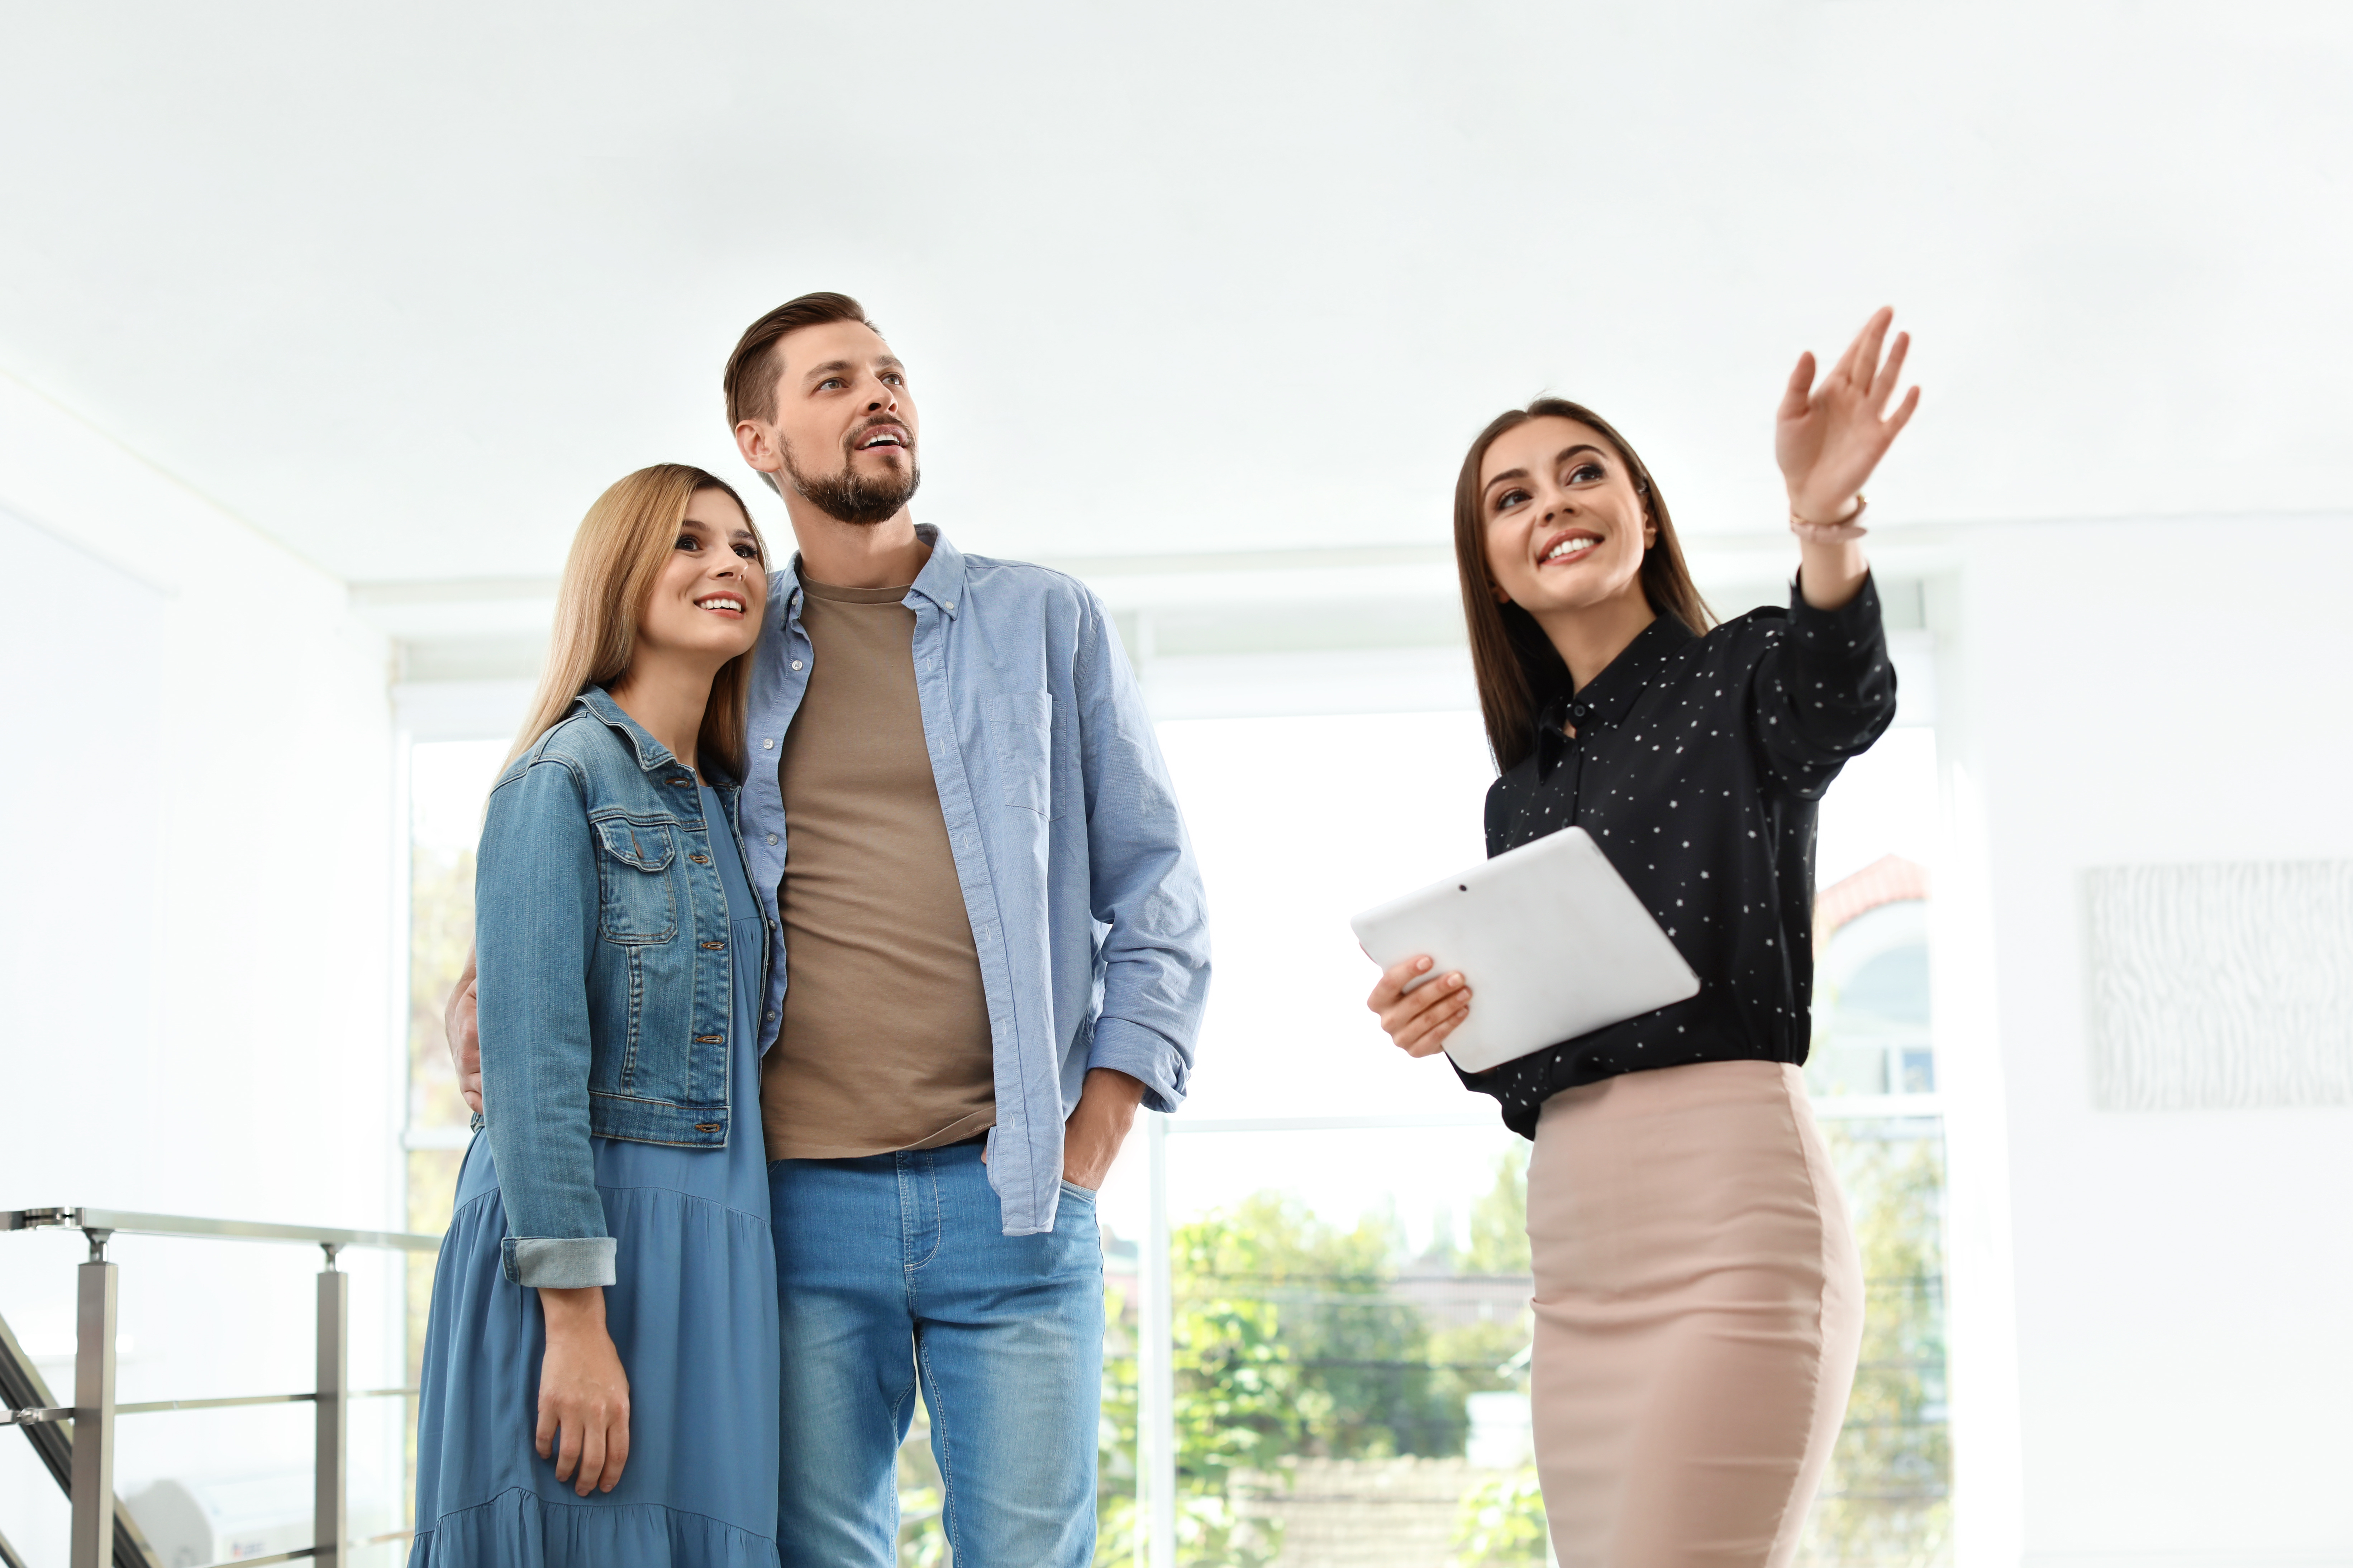 Female real estate agent showing new house to couple